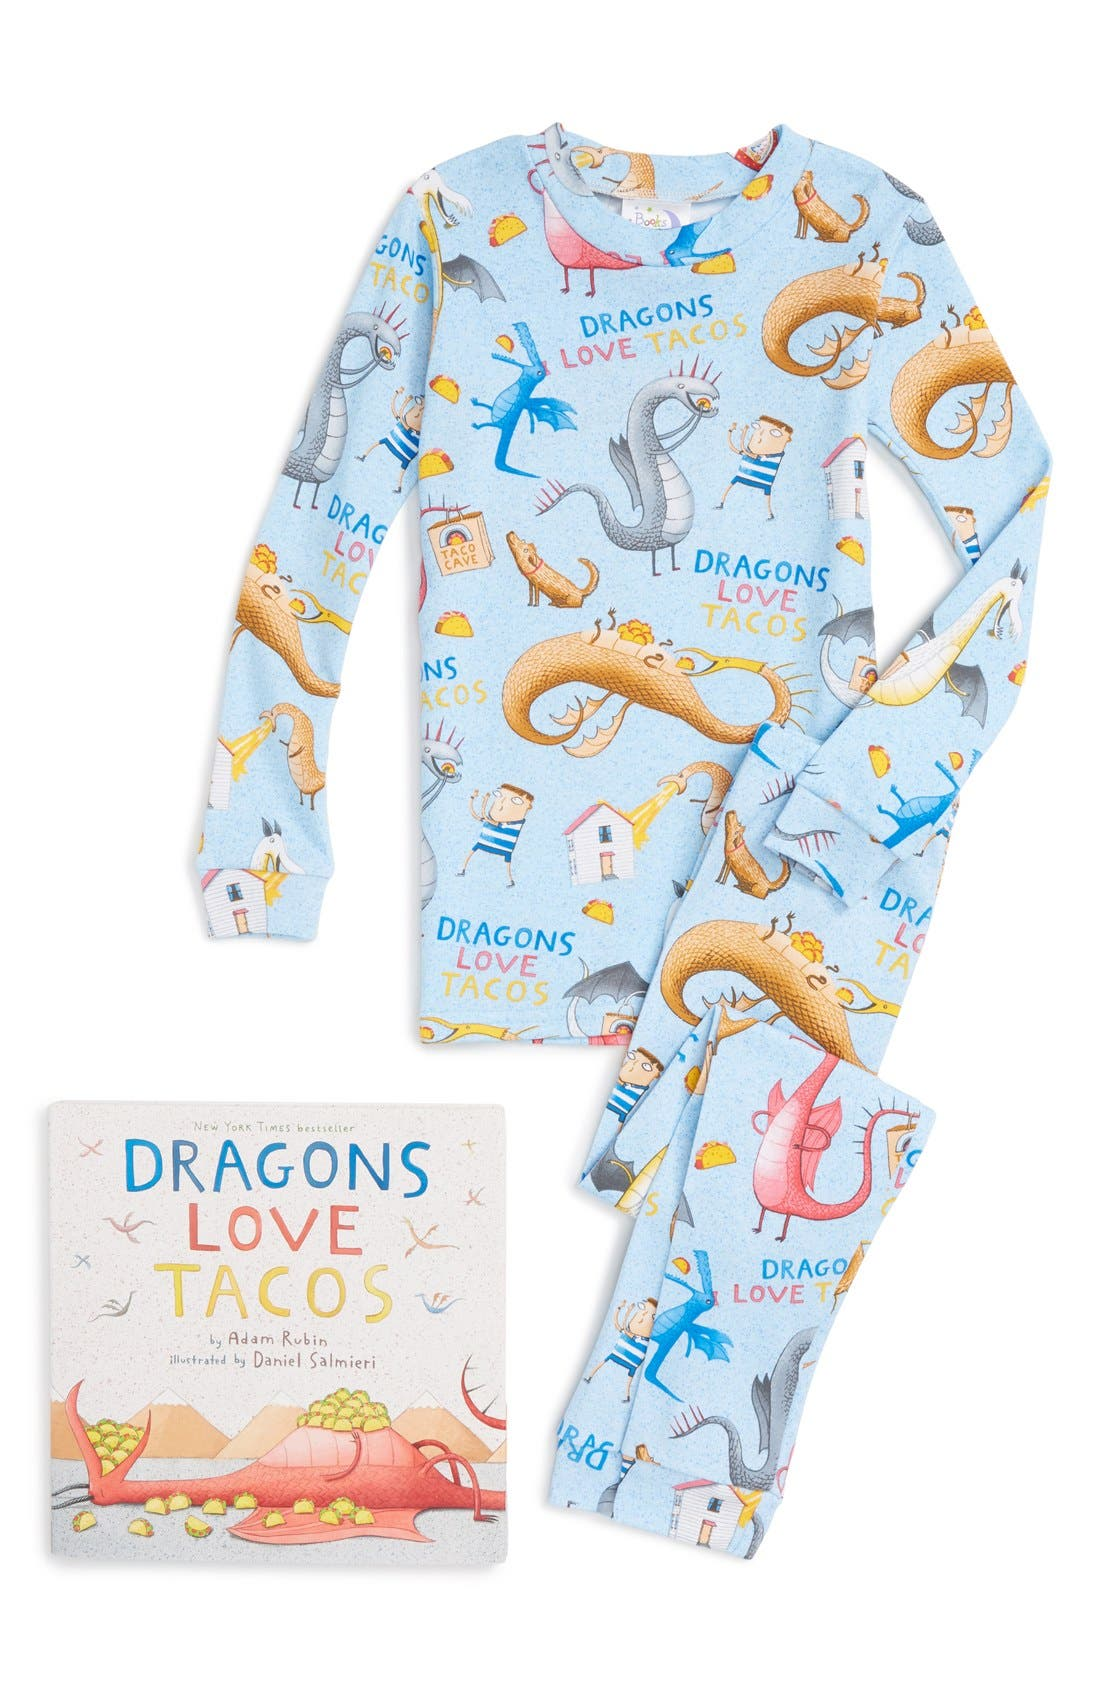 Main Image - Books to Bed Dragons Love Tacos Fitted Two-Piece Pajamas & Book Set (Toddler, Little Kid & Big Kid)